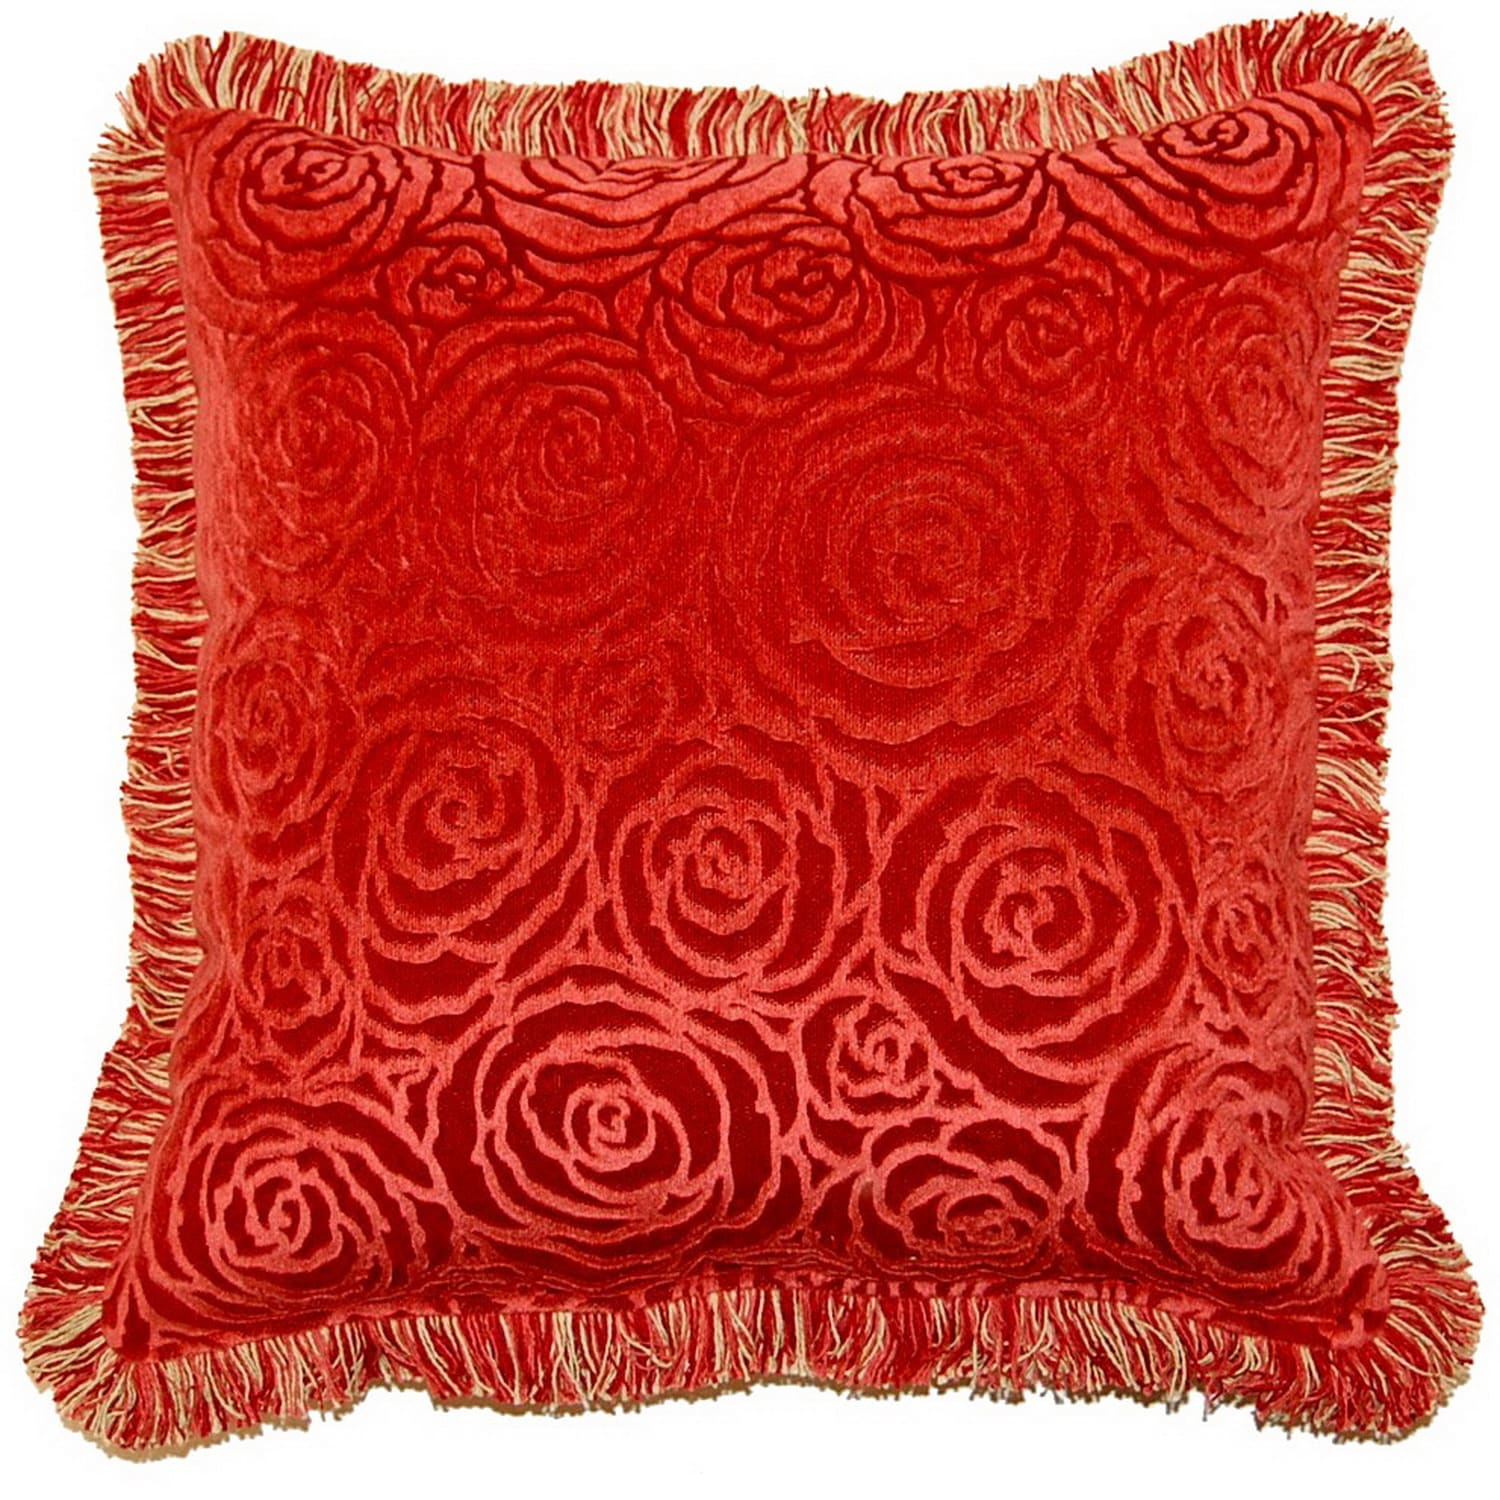 Fox Hill Trading Veronica Terracotta 17-inch Fringed Throw Pillows (Set of 2)